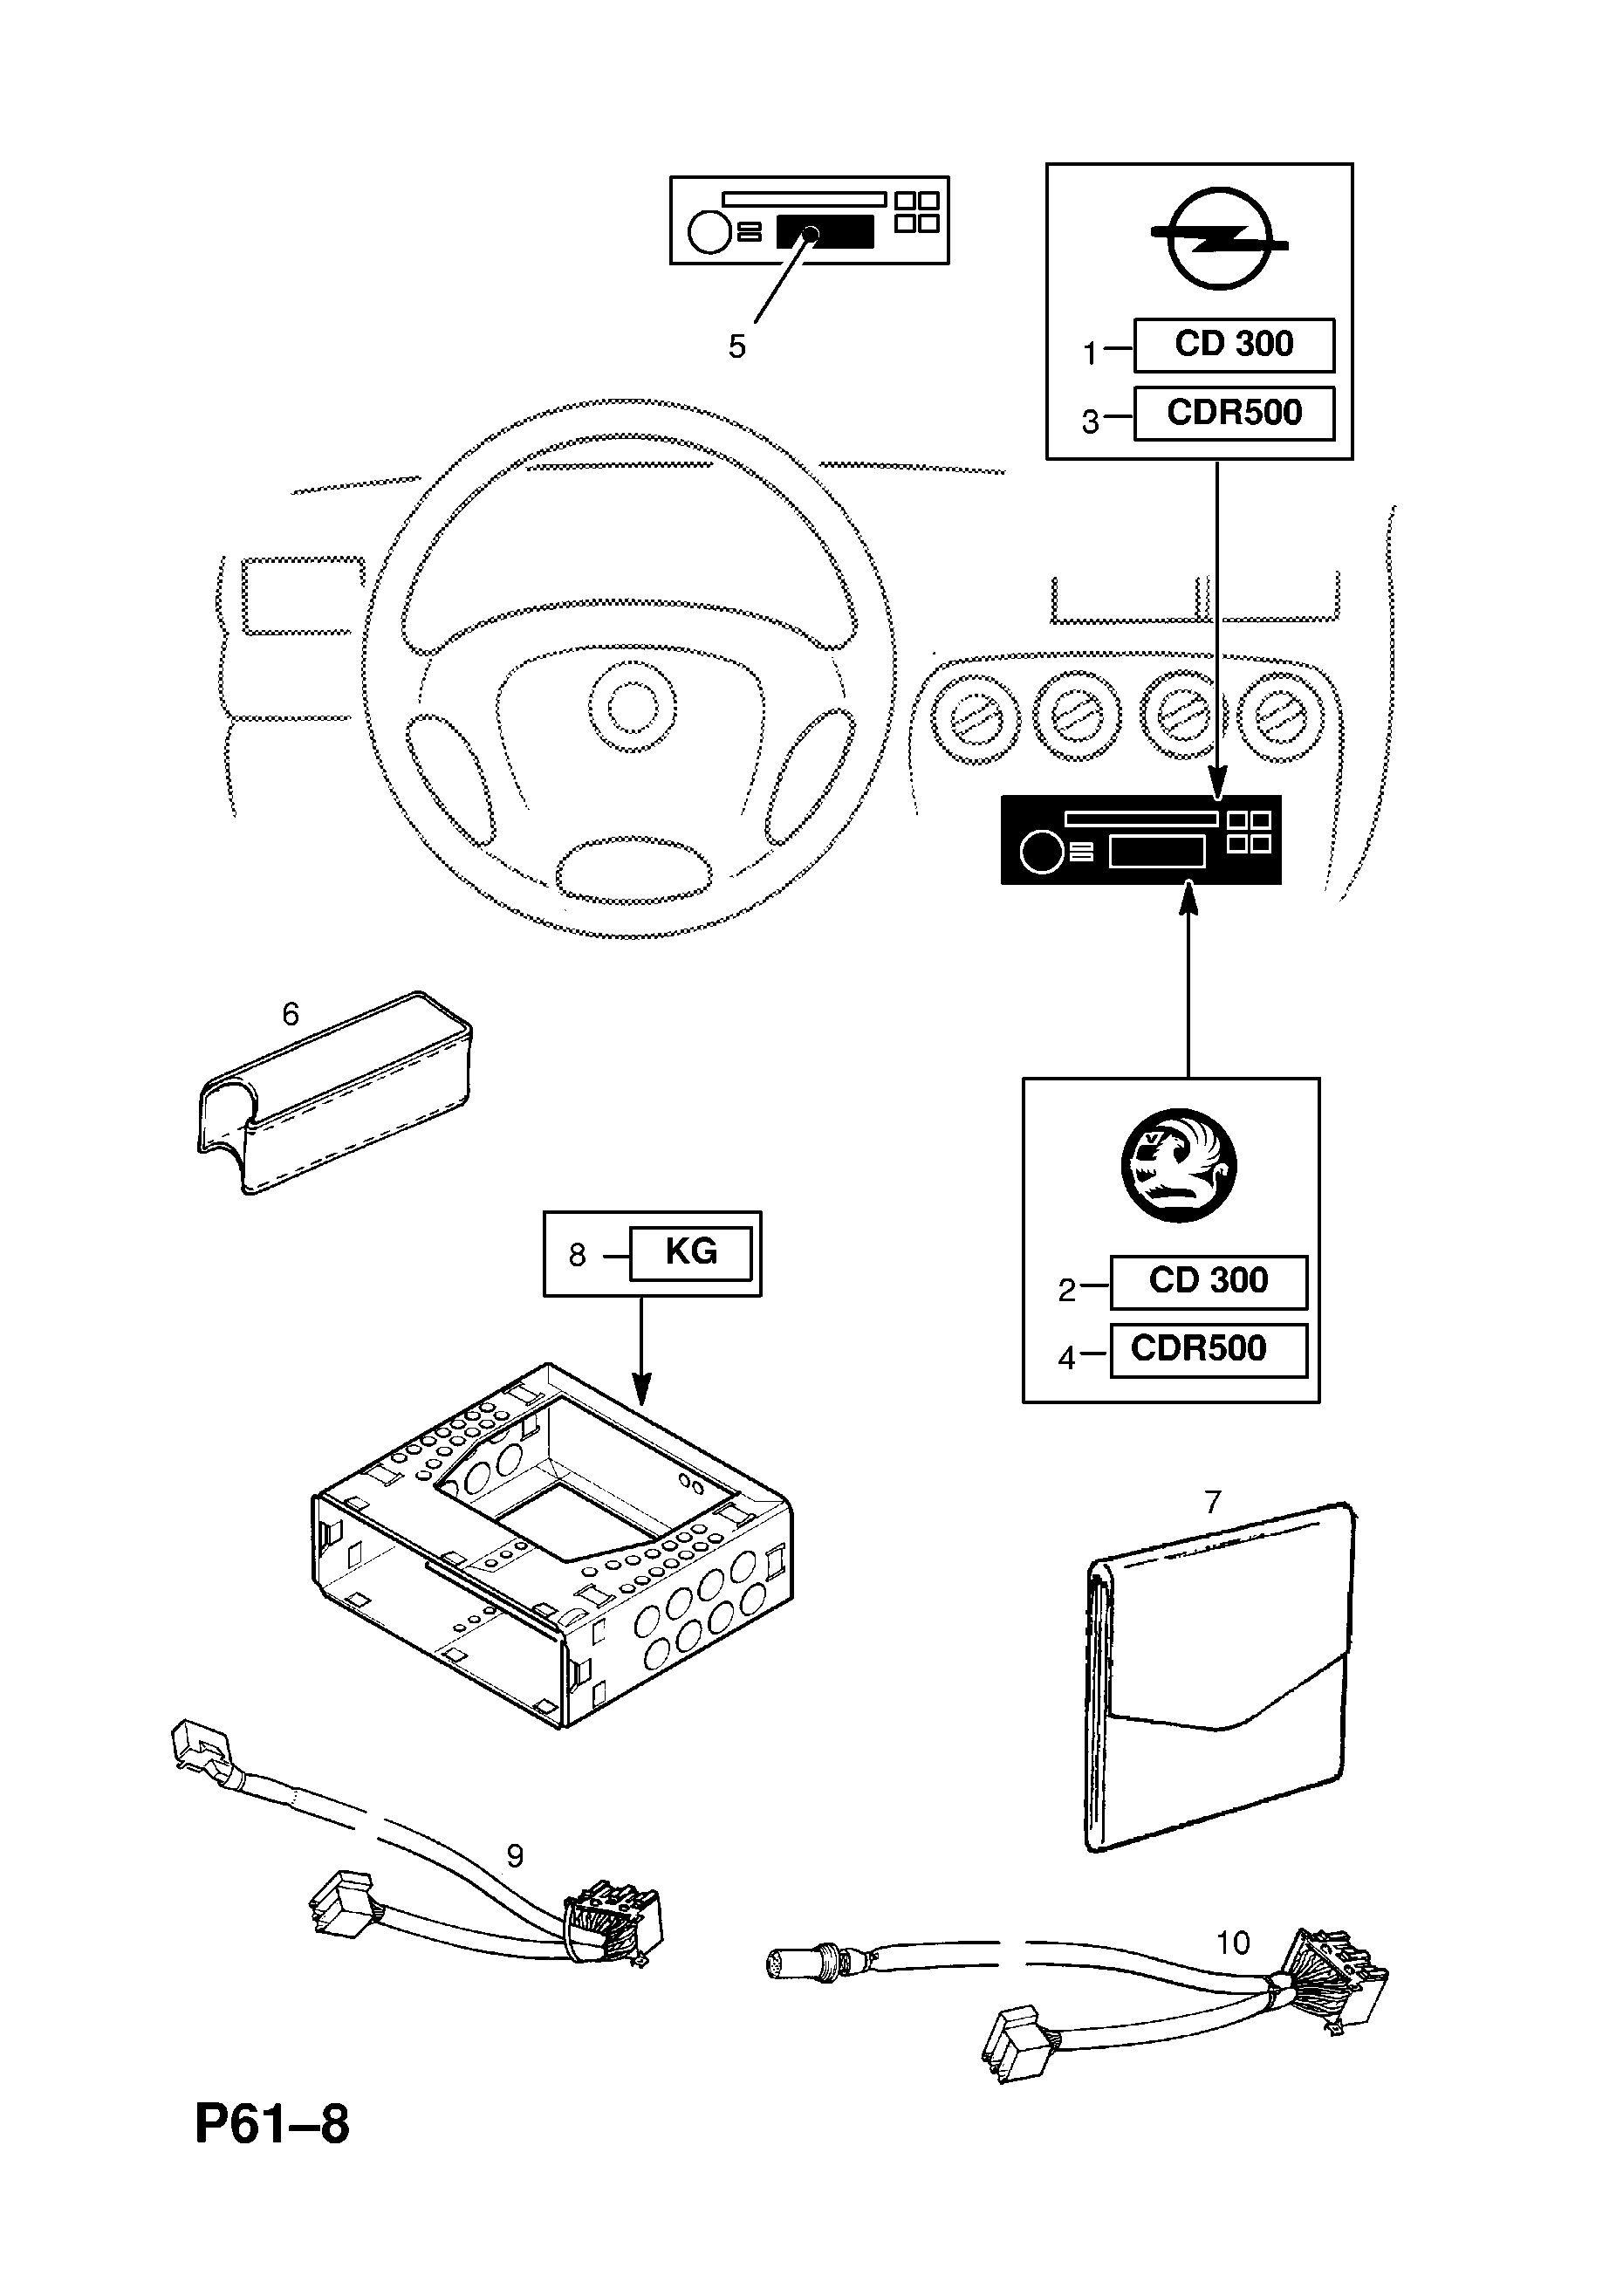 Vauxhall Cdr 500 Wiring Diagram Electrical Colour Codes Enthusiast Diagrams U2022 Color Coding